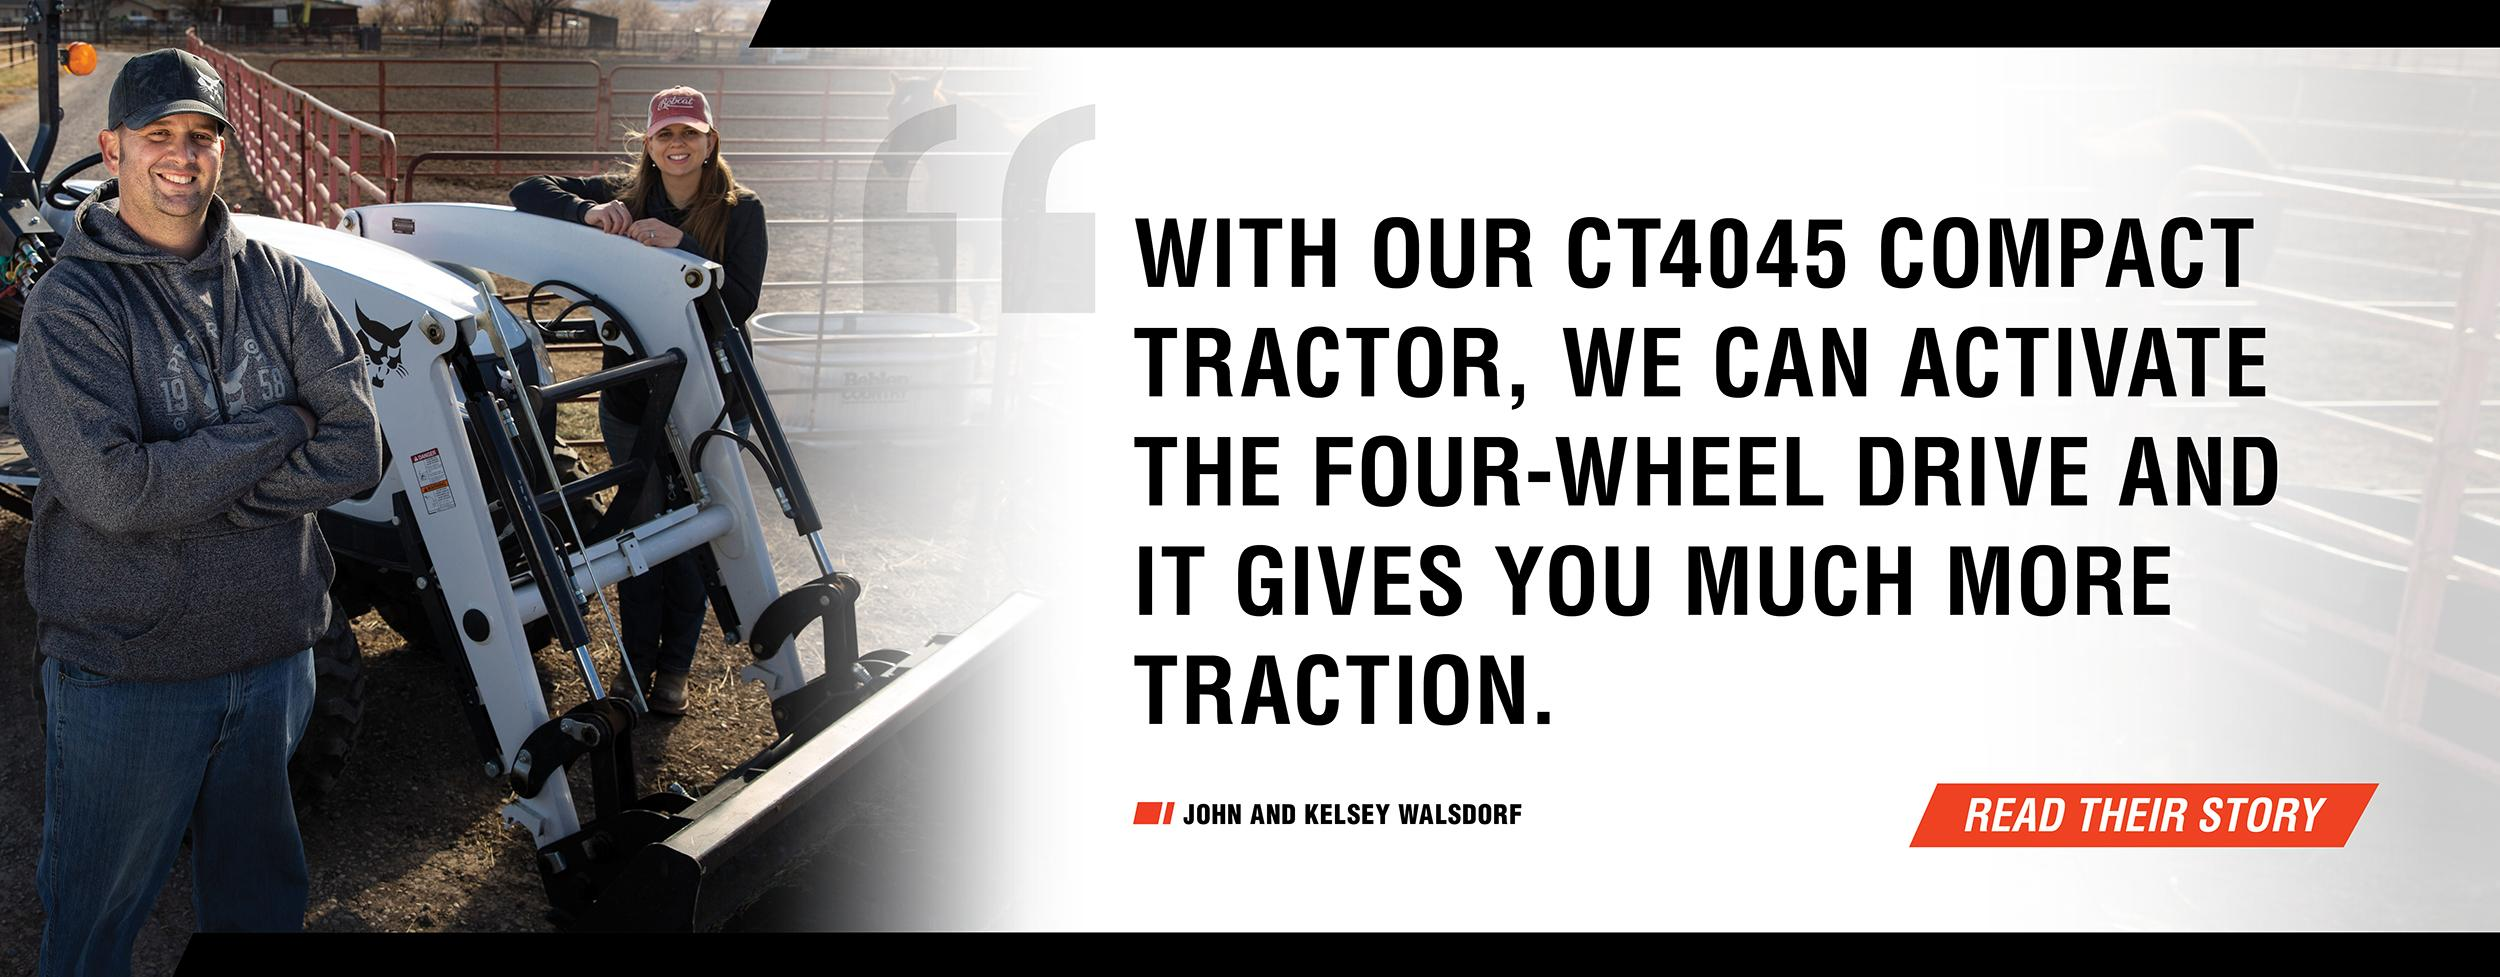 Bobcat Customers John And Kelsey Walsdorf In Front Of Compact Tractor On Their Ranch With Quote - 'With Our CT4045 Compact Tractor, We Can Activate The Four-Wheel Drive And It Gives You Much More Traction.